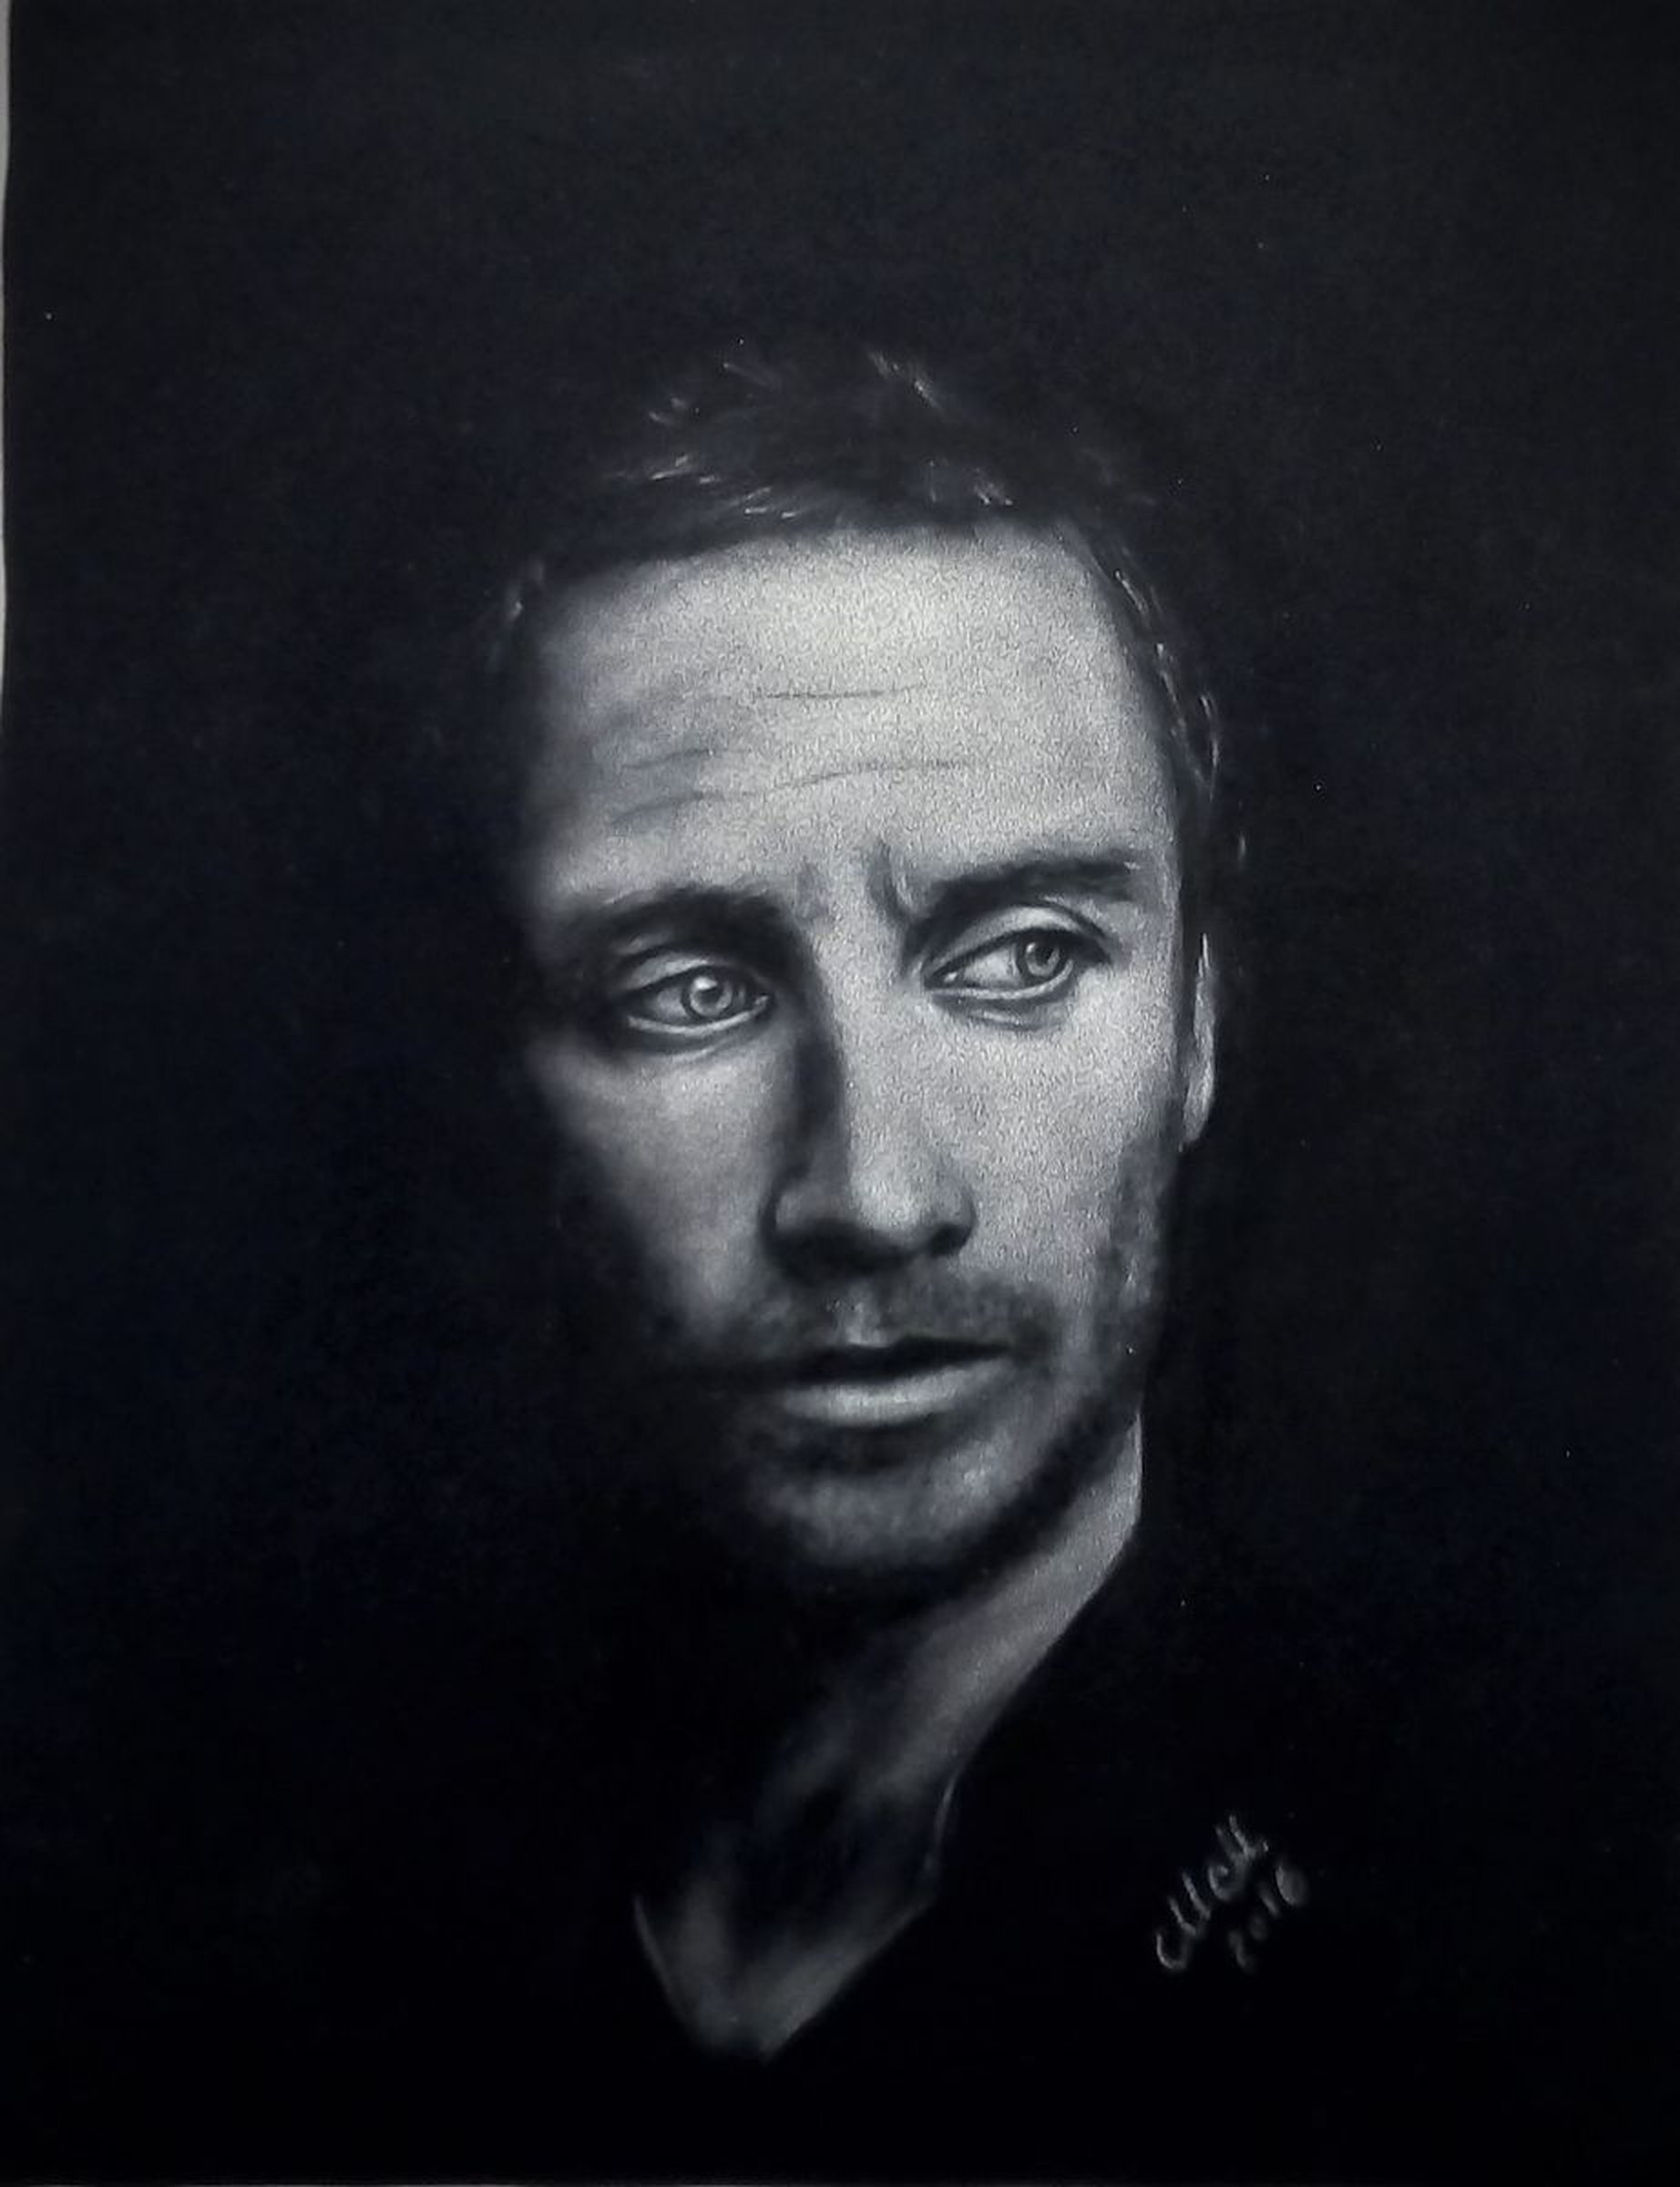 Man in the dark black and white pastel portrait painting 2016